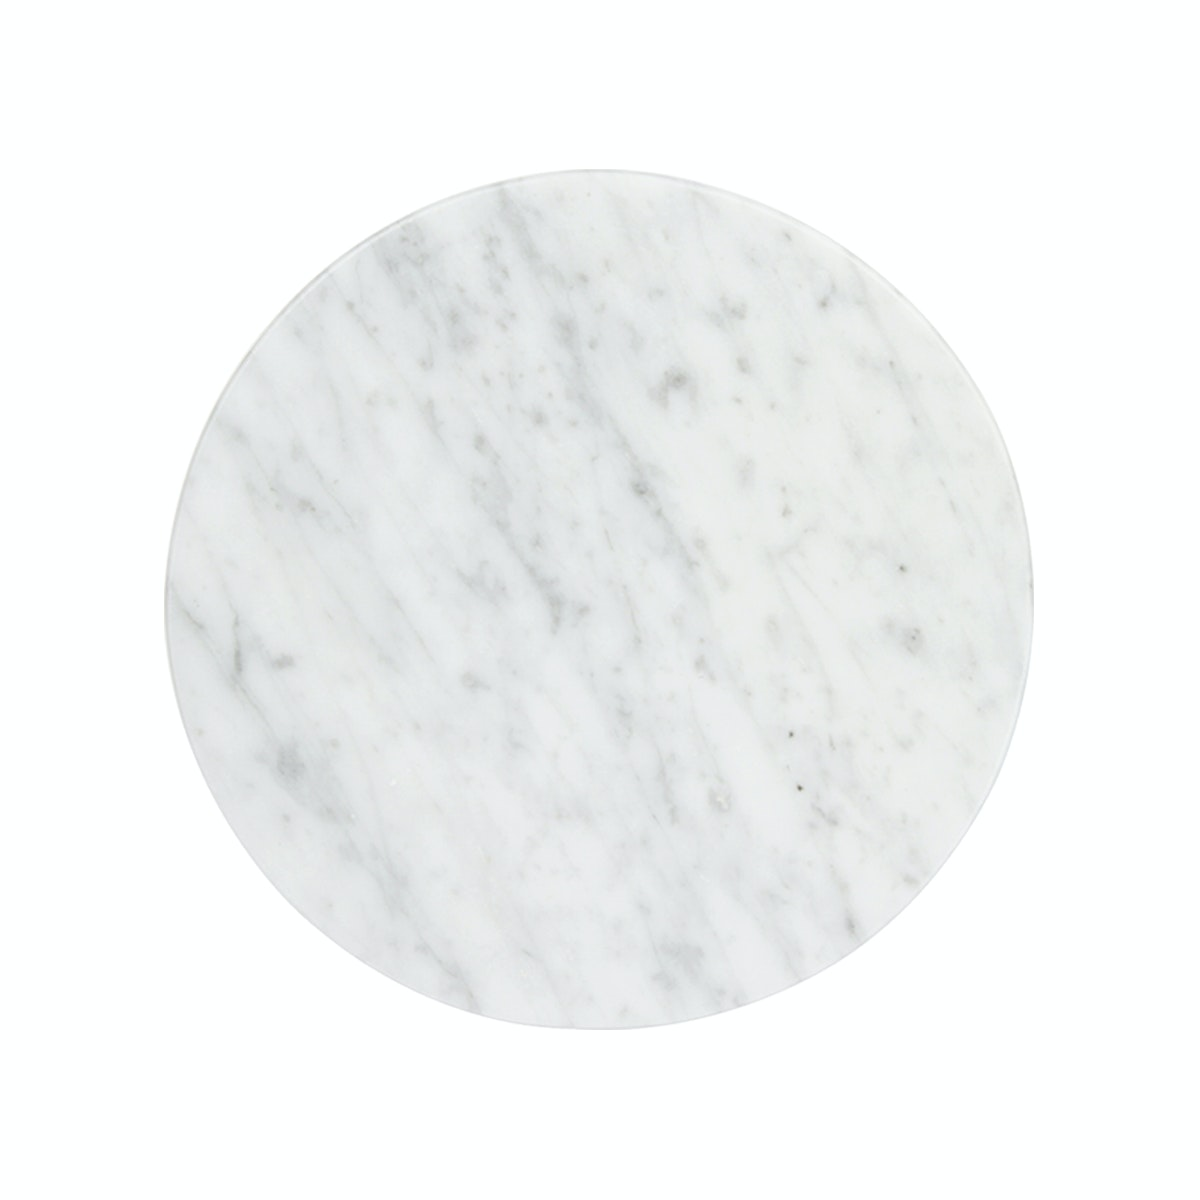 Glerry Home Decor Round White Moonstone Marble D20